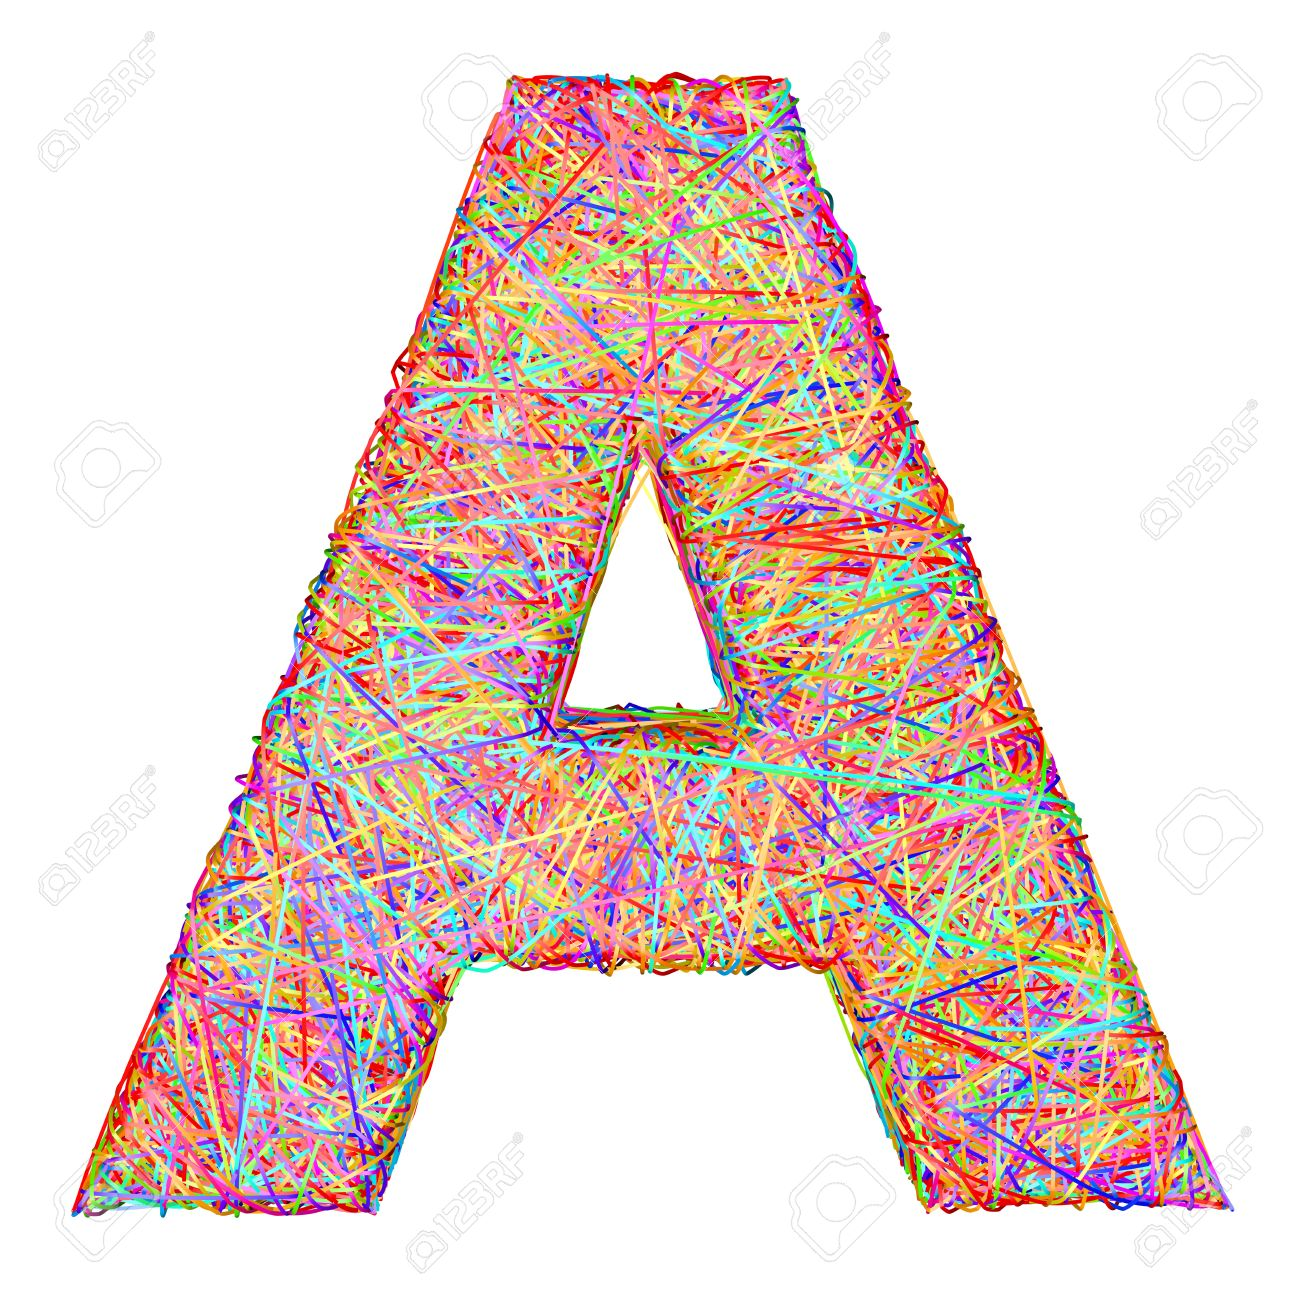 alphabet symbol letter a composed of colorful striplines isolated